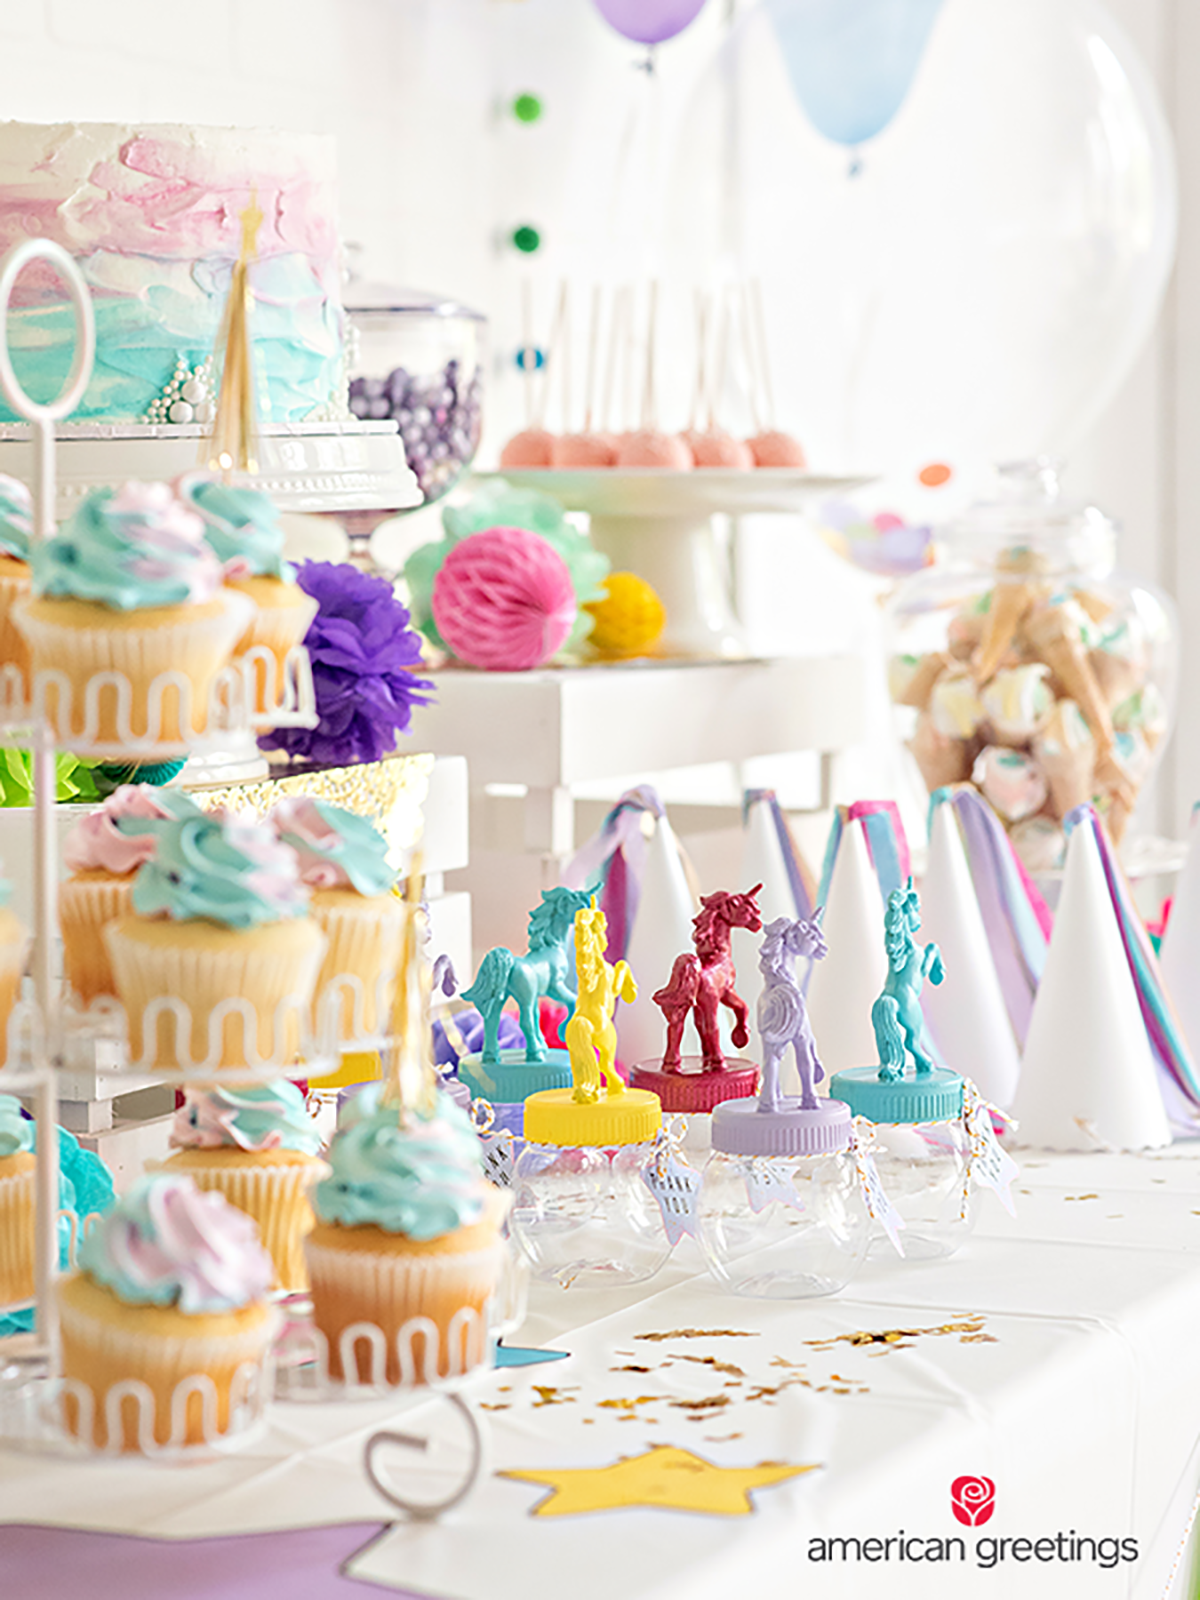 Cupcakes placed on diffrent heights and dressed up with gold tassel party picks and a lot of papper cones heads, candys, pink gumballs and a colorful cake in the midde.